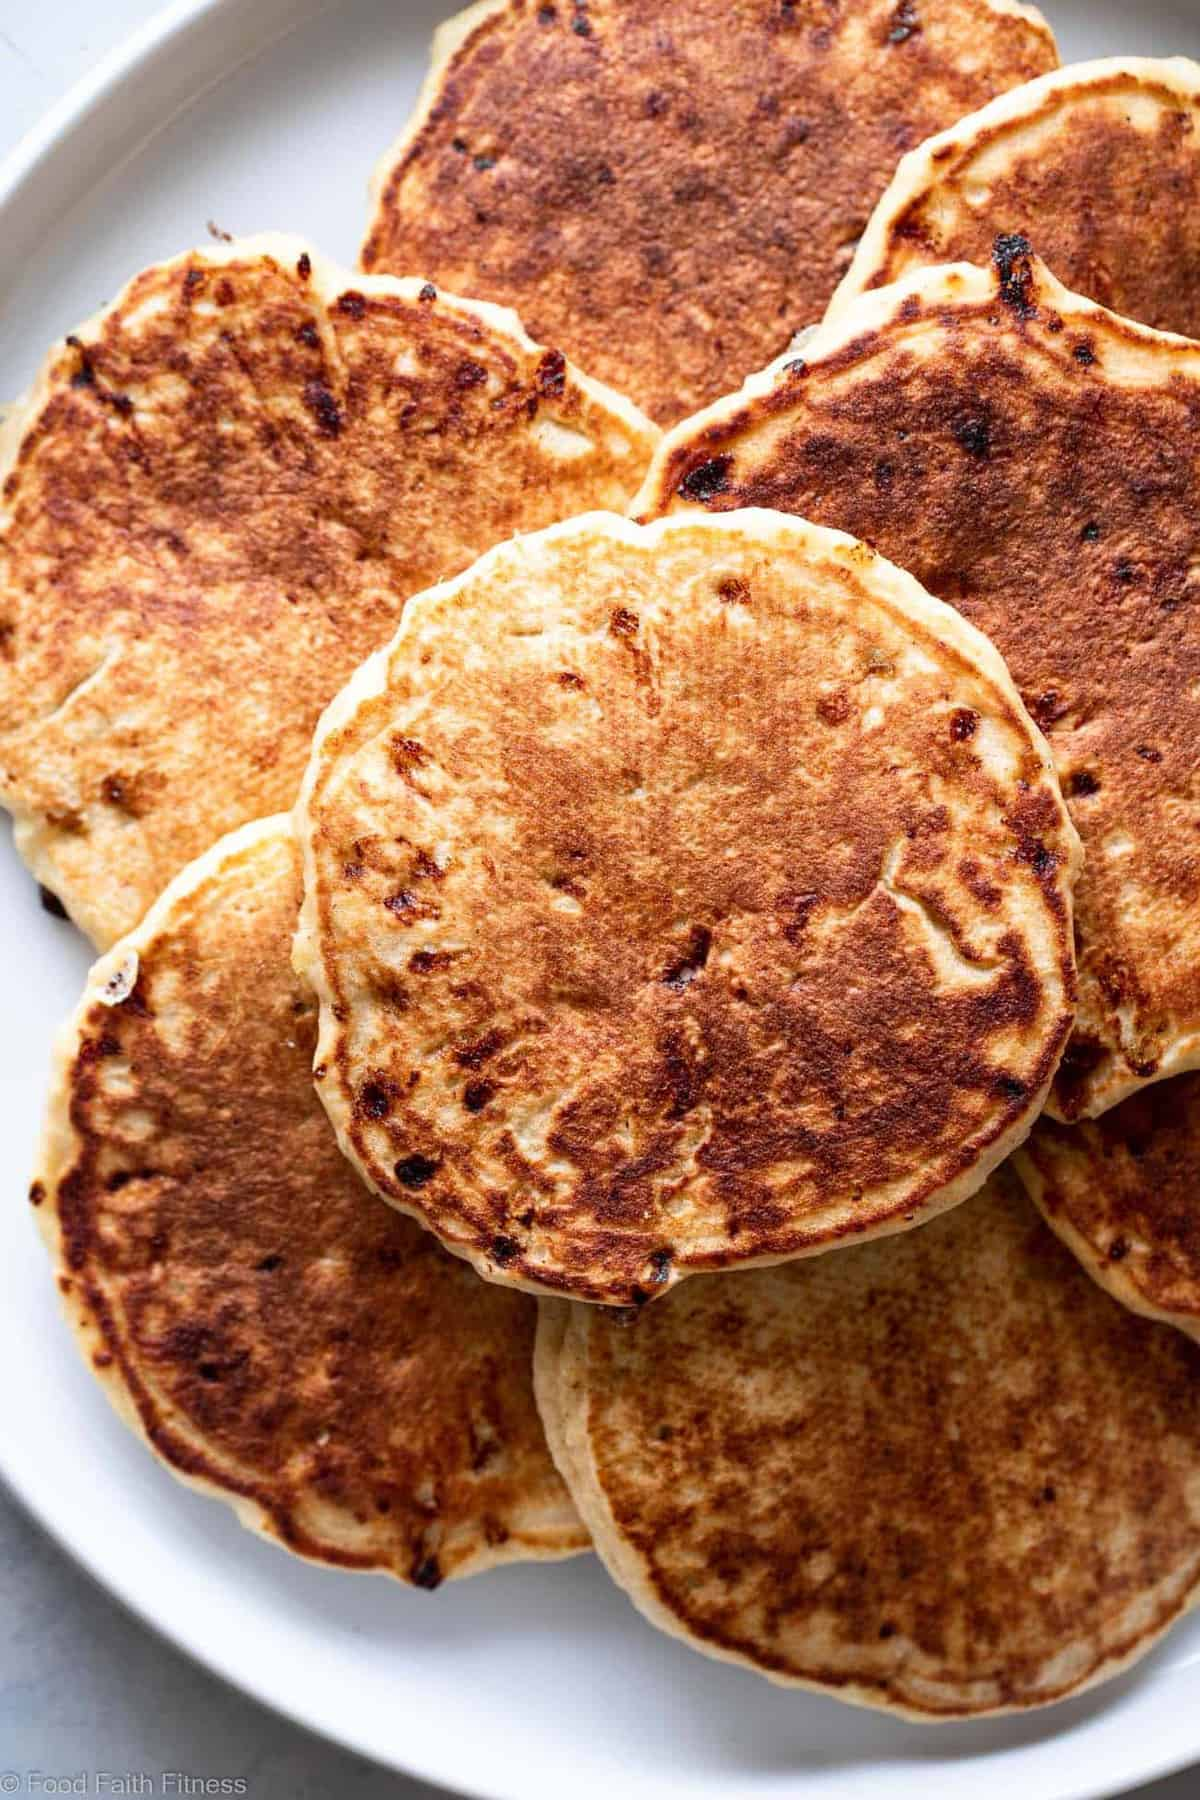 Cottage Cheese Pancakes Recipe - These easy pancakes naturally gluten free and protein packed! Make them ahead for healthy breakfasts or make them on weekends! Great for kids and adults. | #Foodfaithfitness |